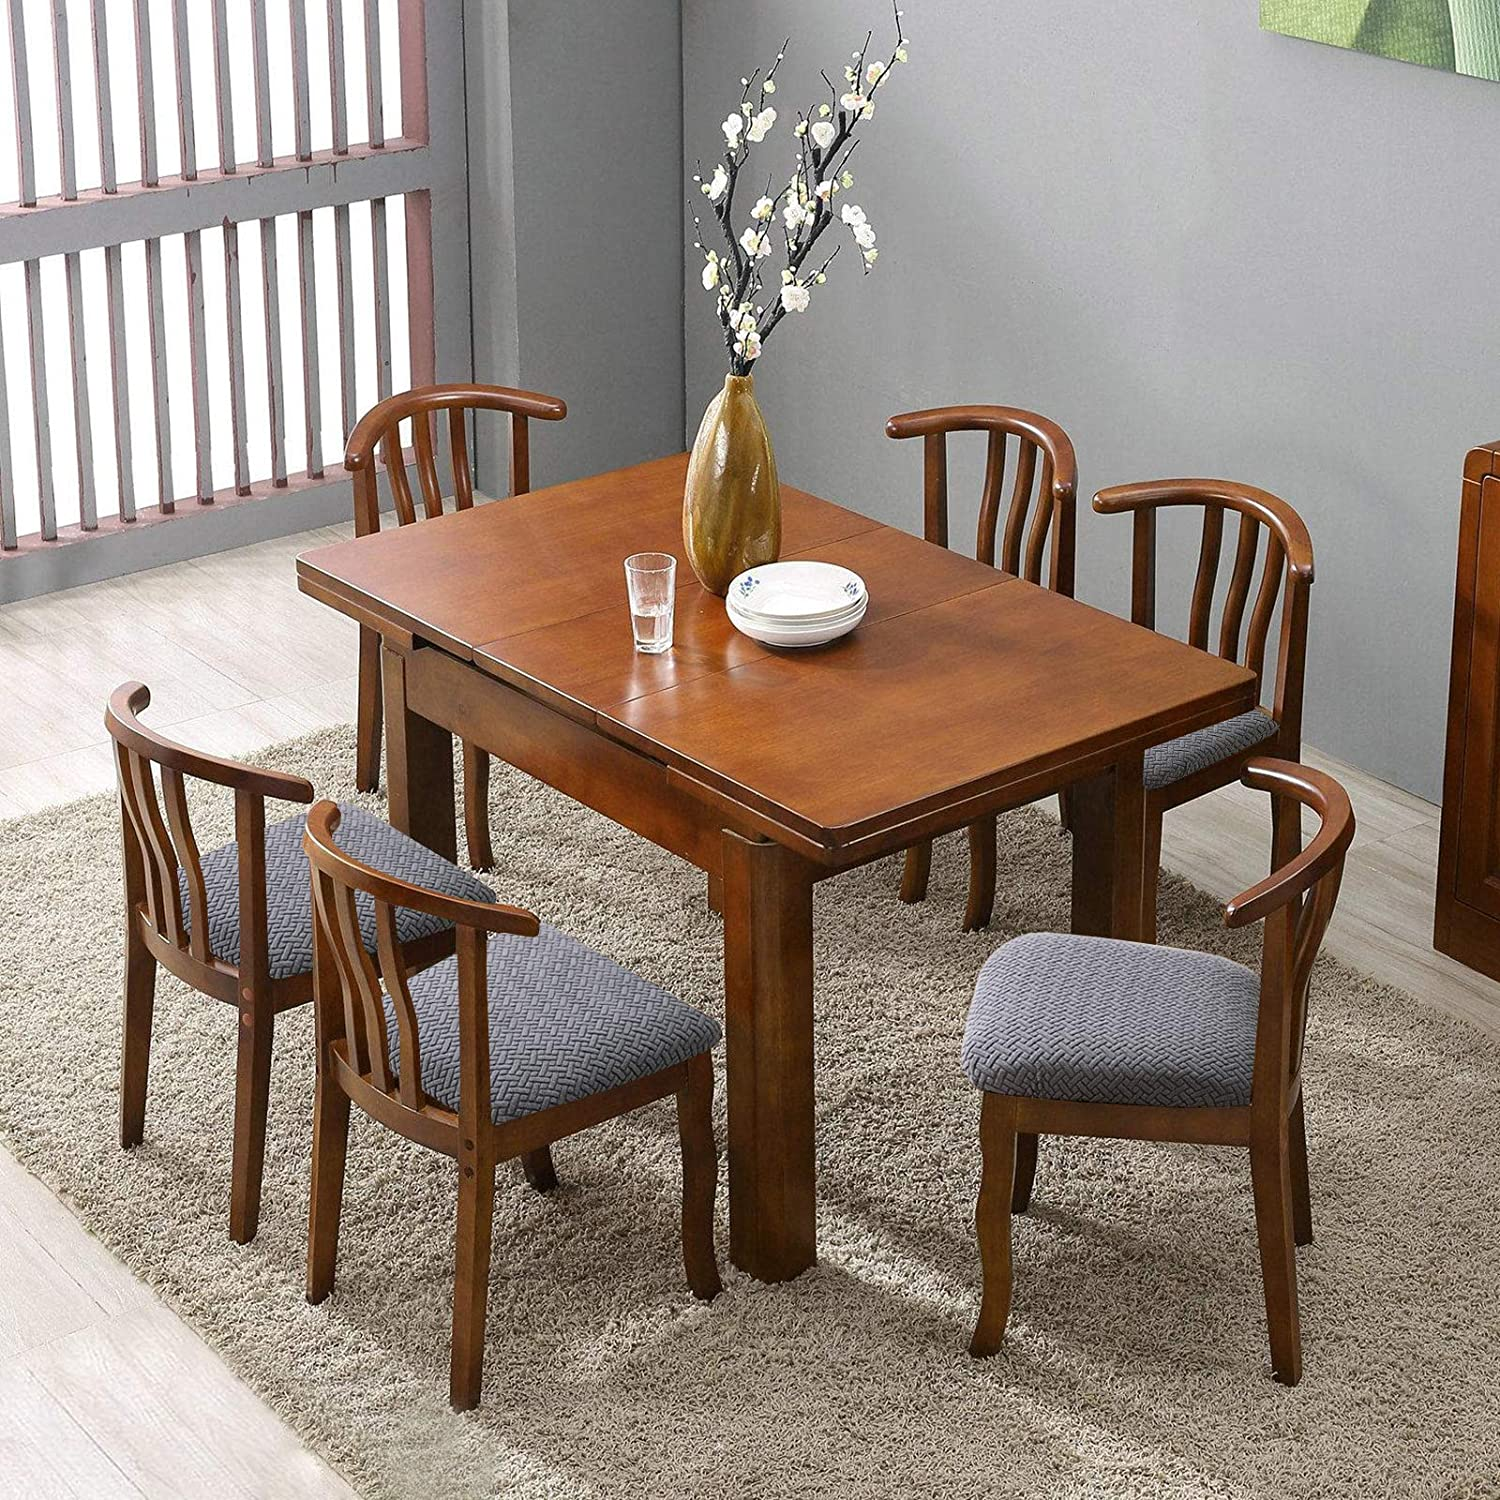 Buy Genina Seat Covers for Dining Room Chair Seat Slipcovers ...